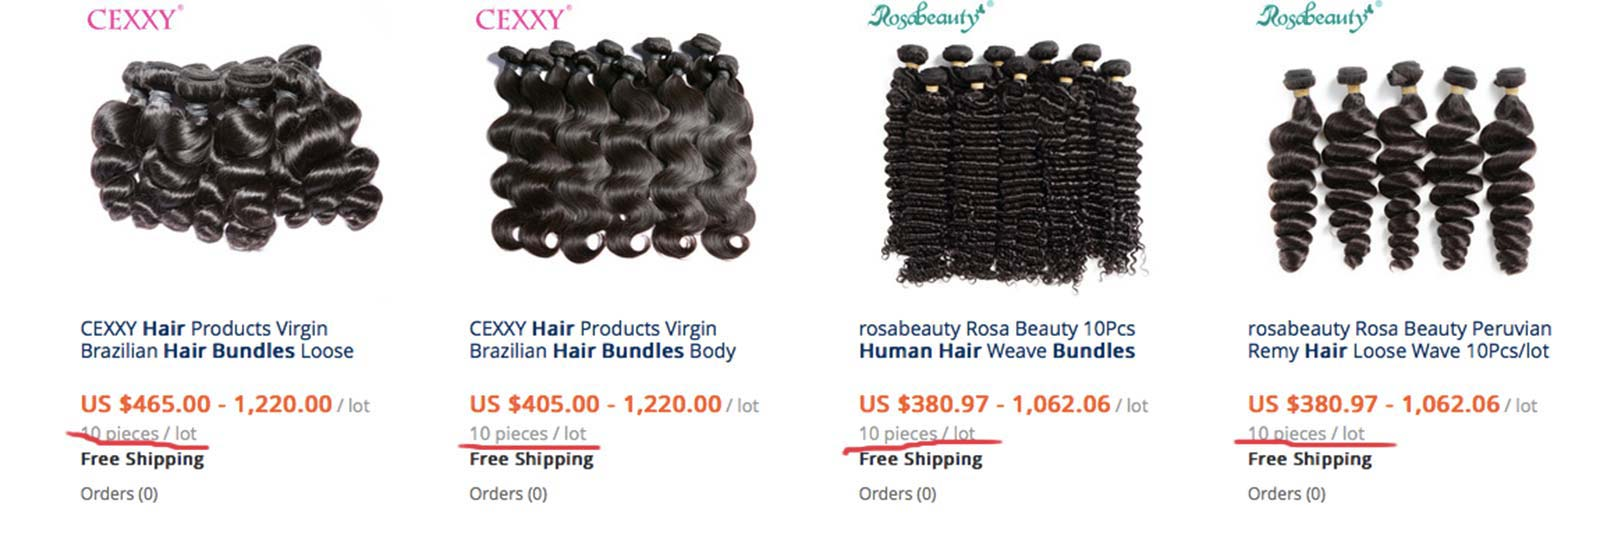 Wholesale Hair Bundles In Bulk From Aliexpress Is Available Again